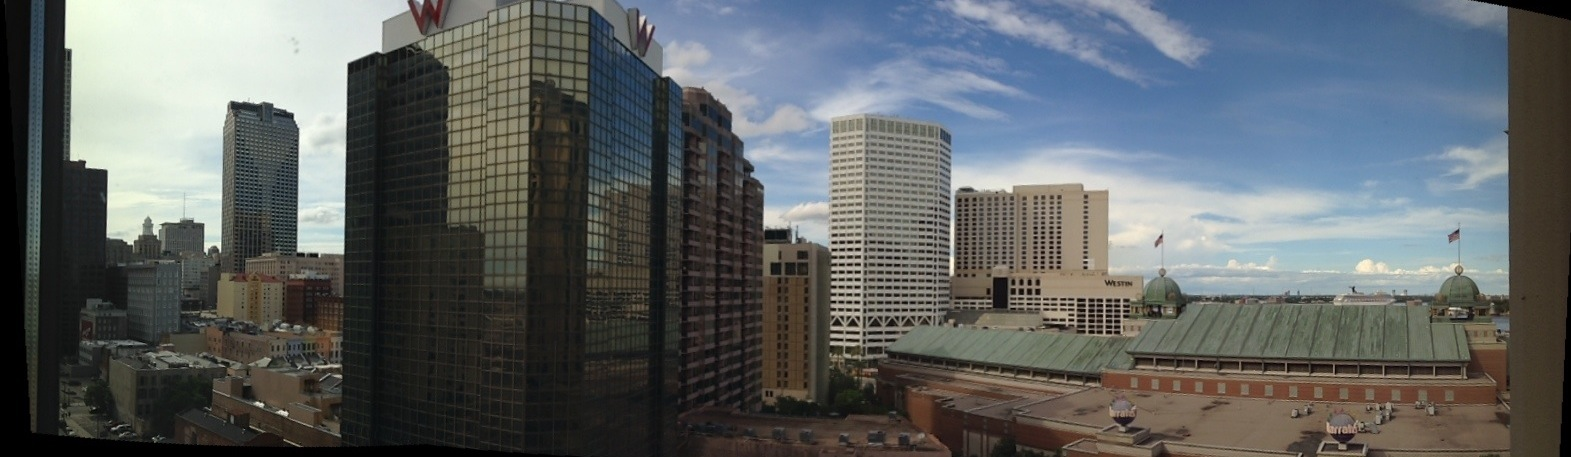 Panoramic shot of New Orleans from Loews Hotel